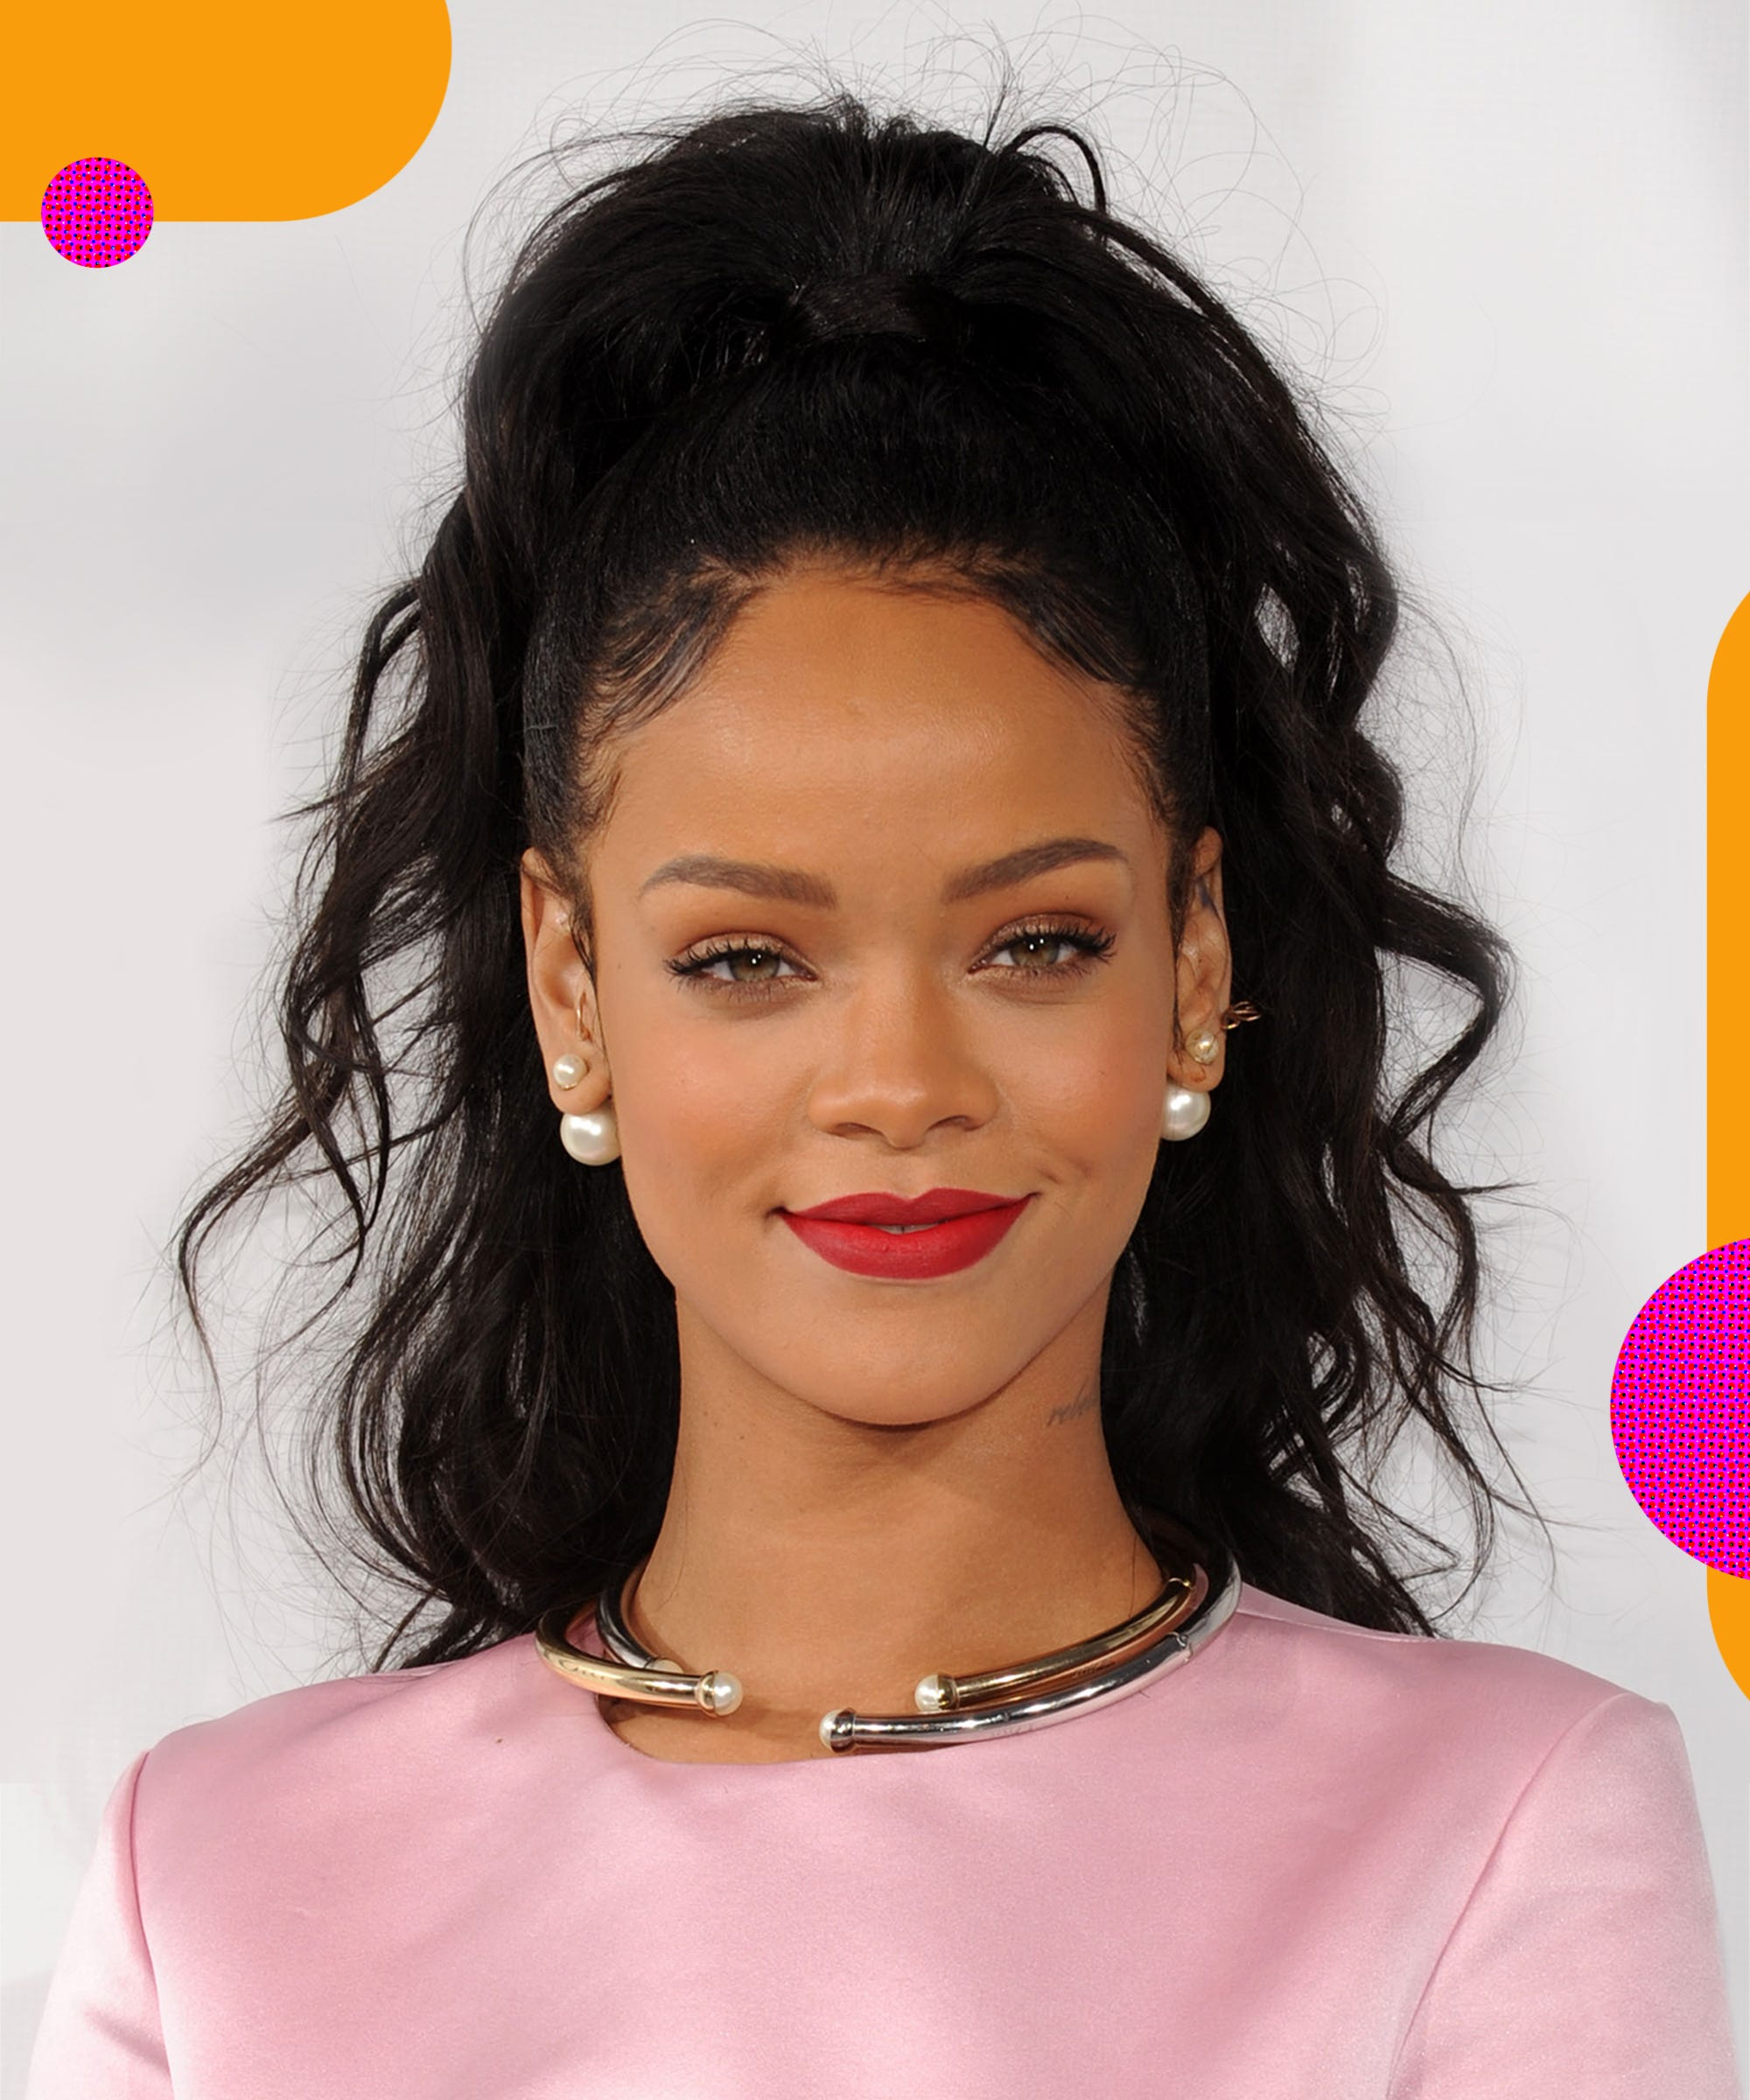 Rihanna On British Vogue Cover With Super Thin Eyebrows